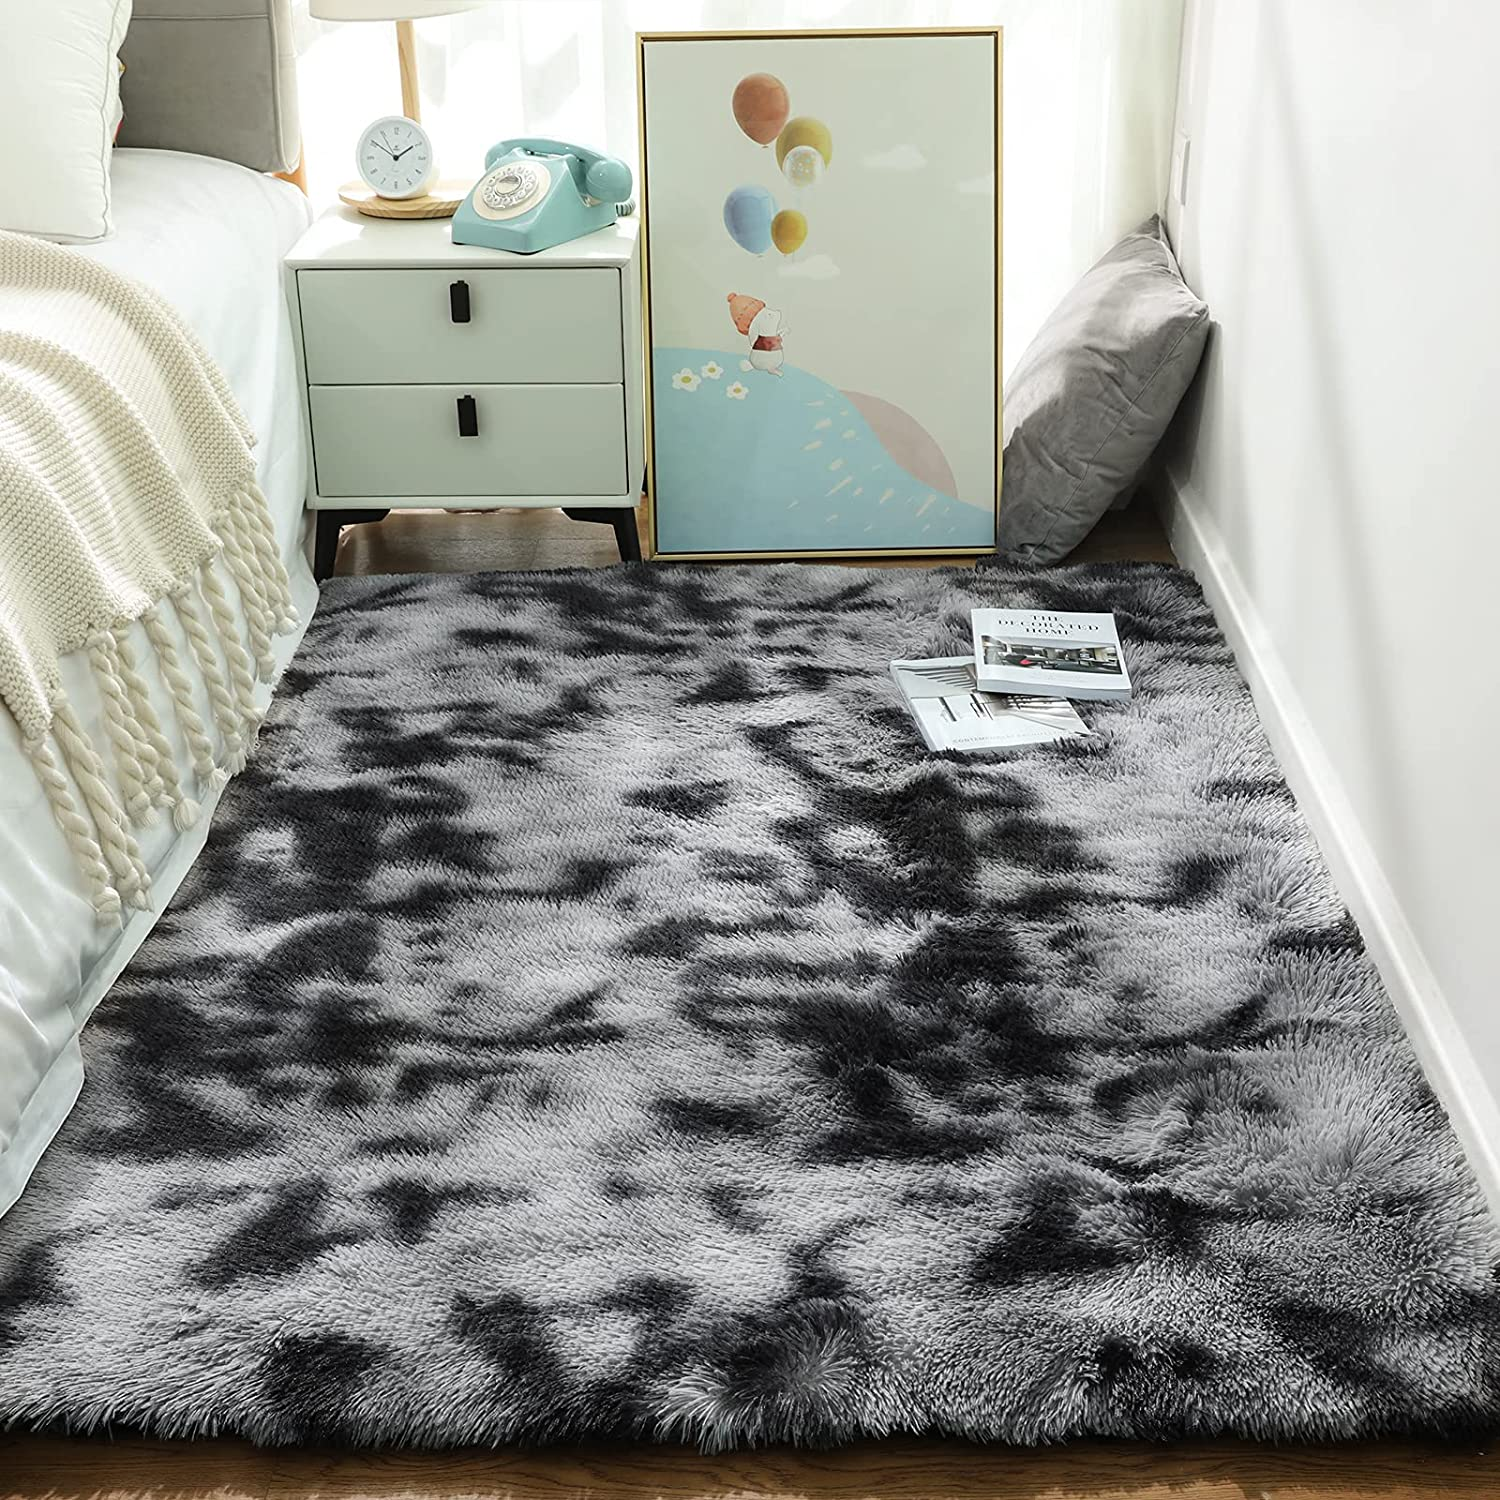 Ophanie Rugs Clearance SALE! Limited time! for Bedroom Fluffy Shag S Fuzzy Carpet Plush 25% OFF Soft